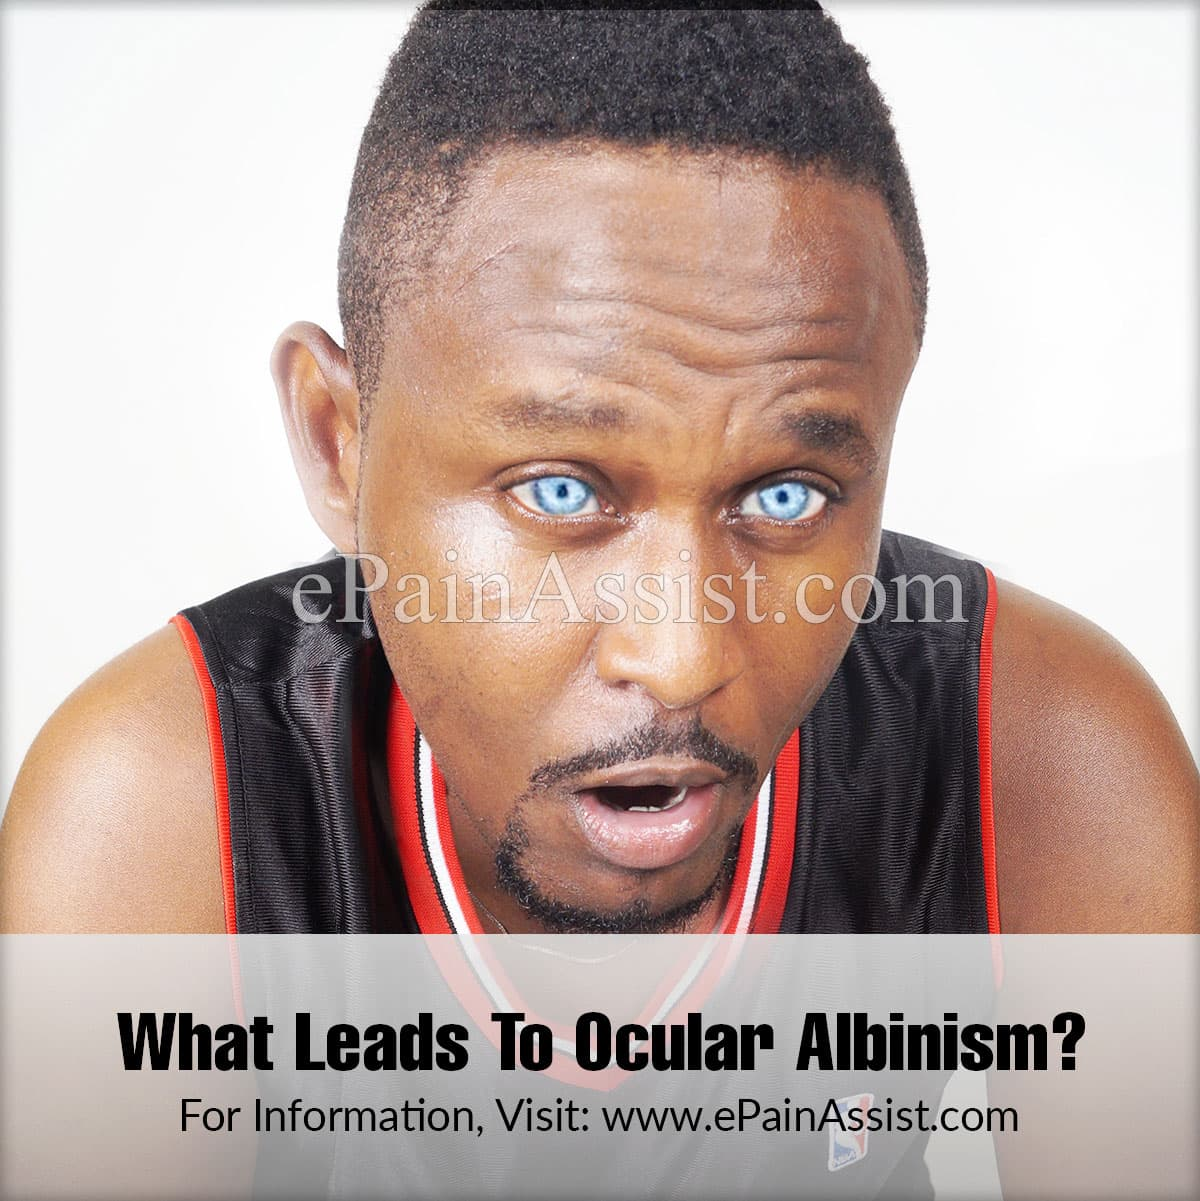 What Leads To Ocular Albinism?